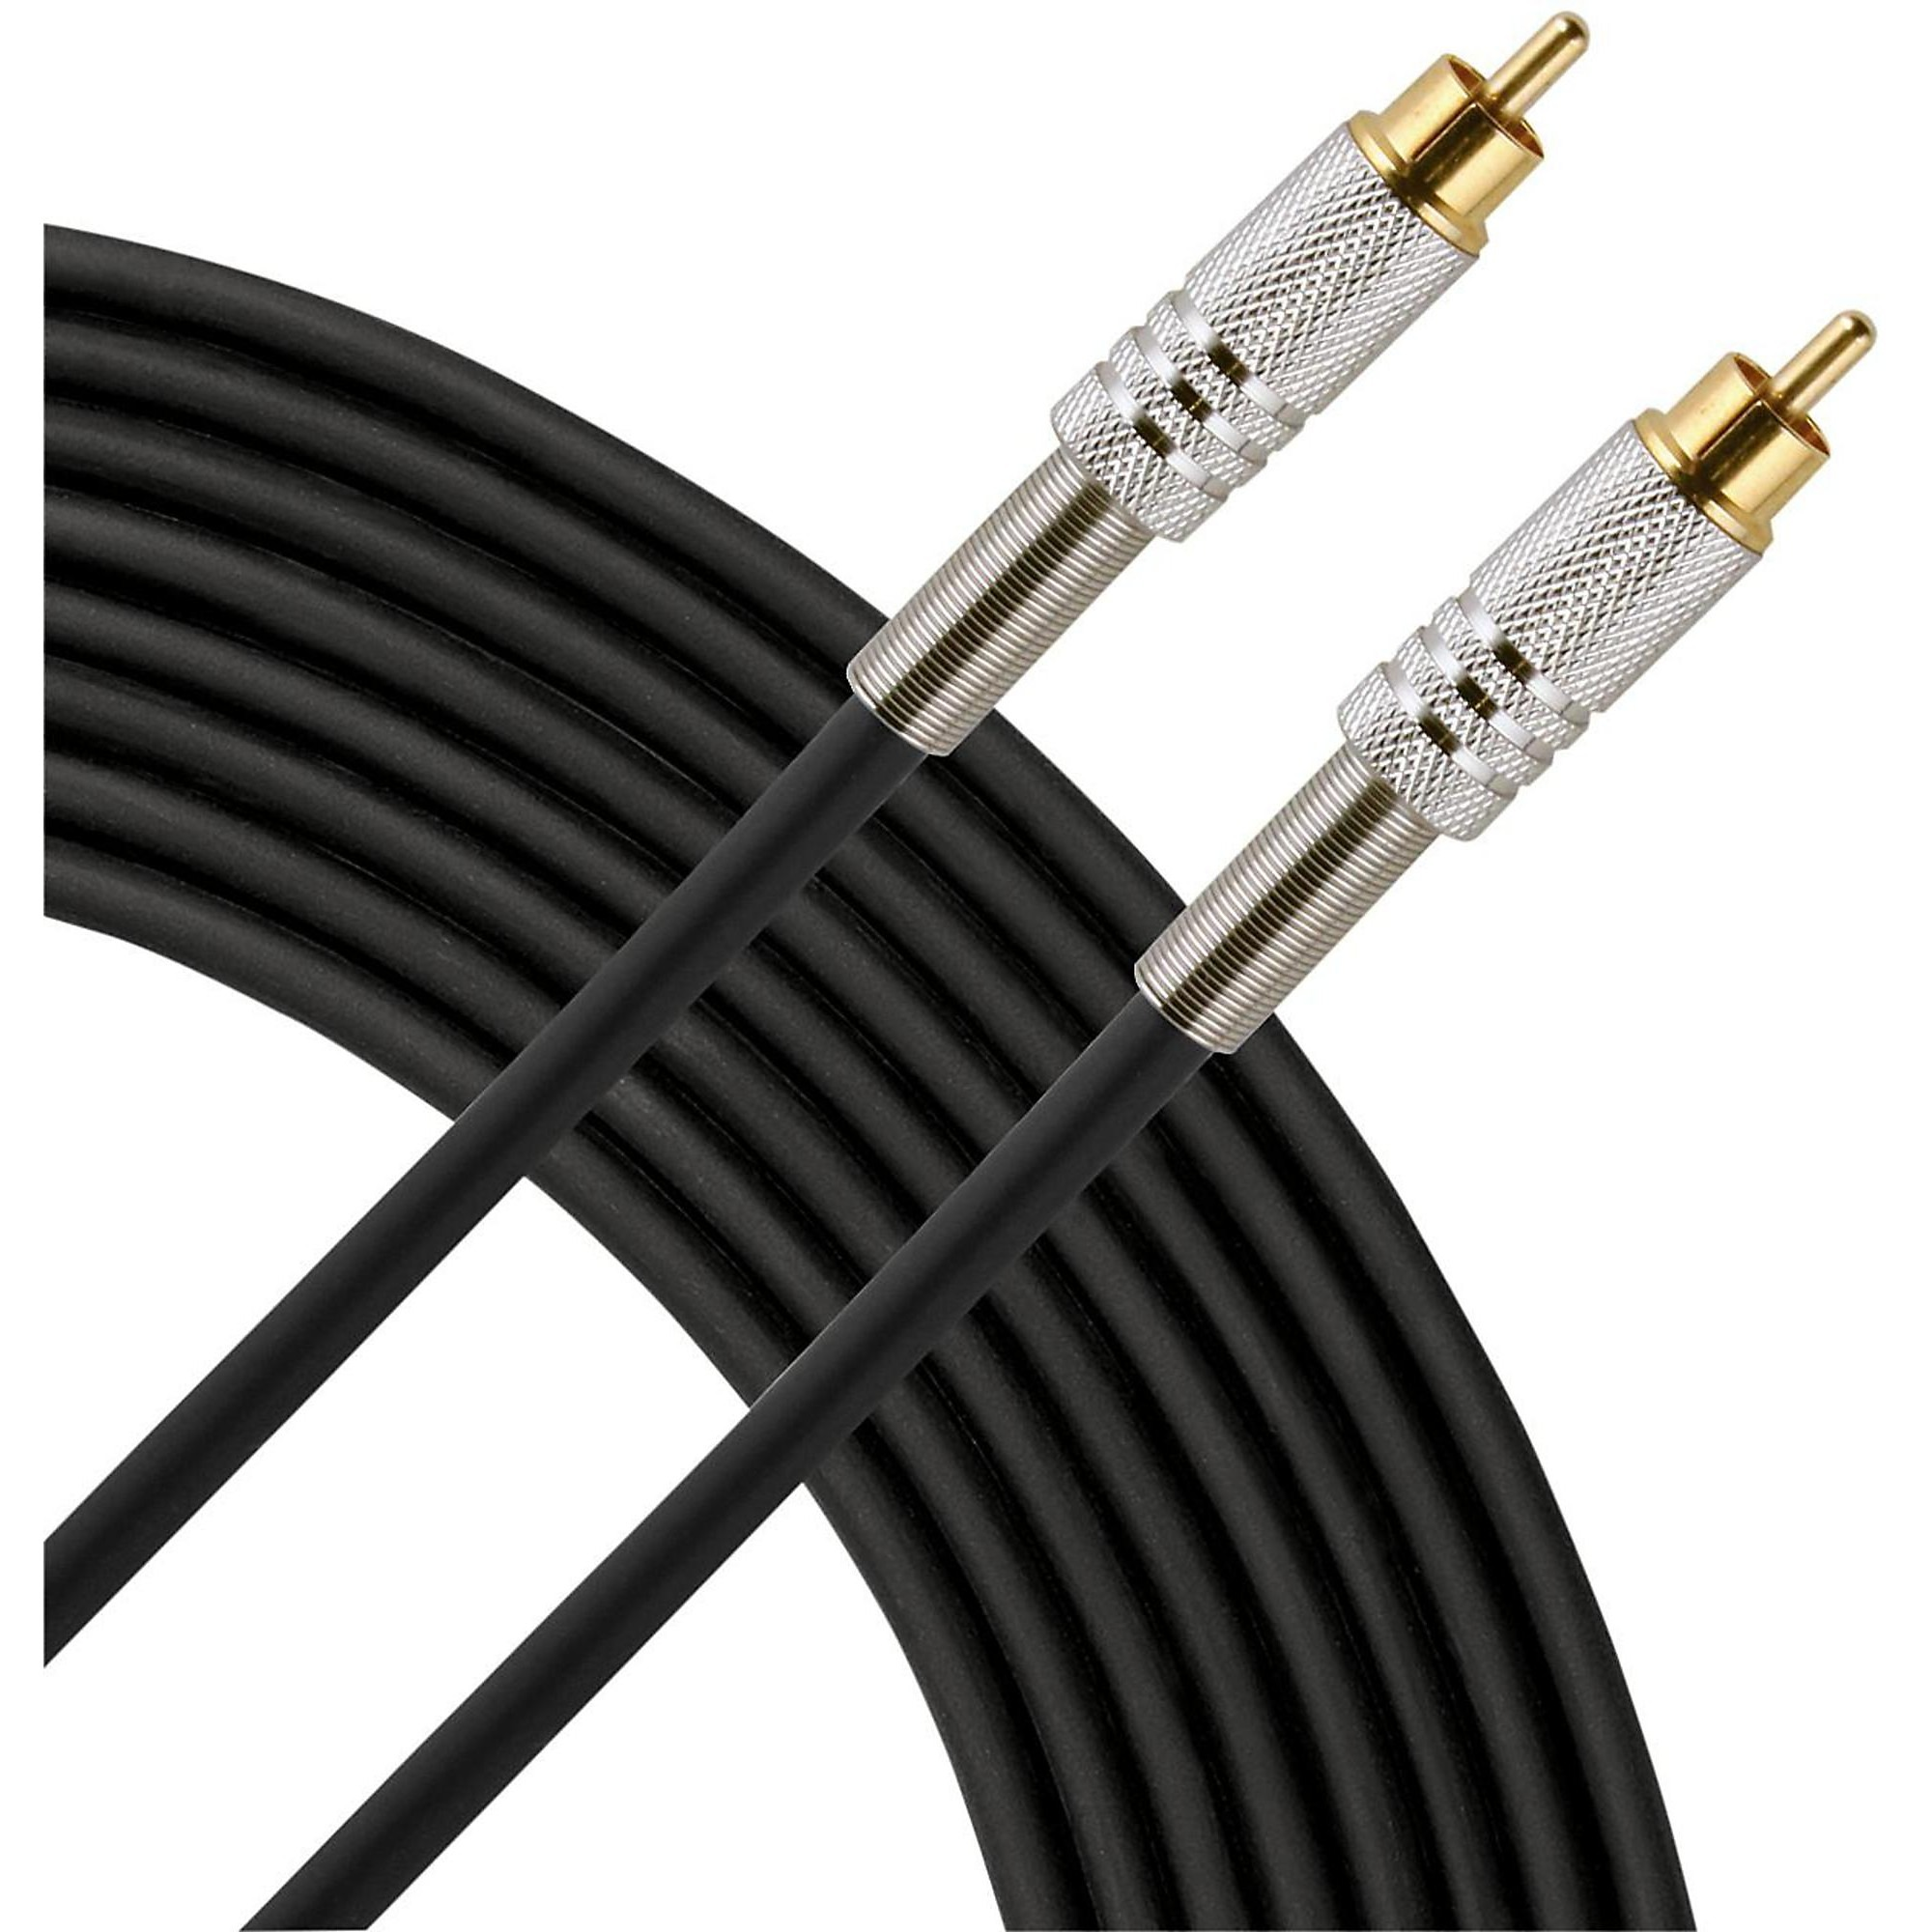 Clearance S/PDIF RCA Data Cable